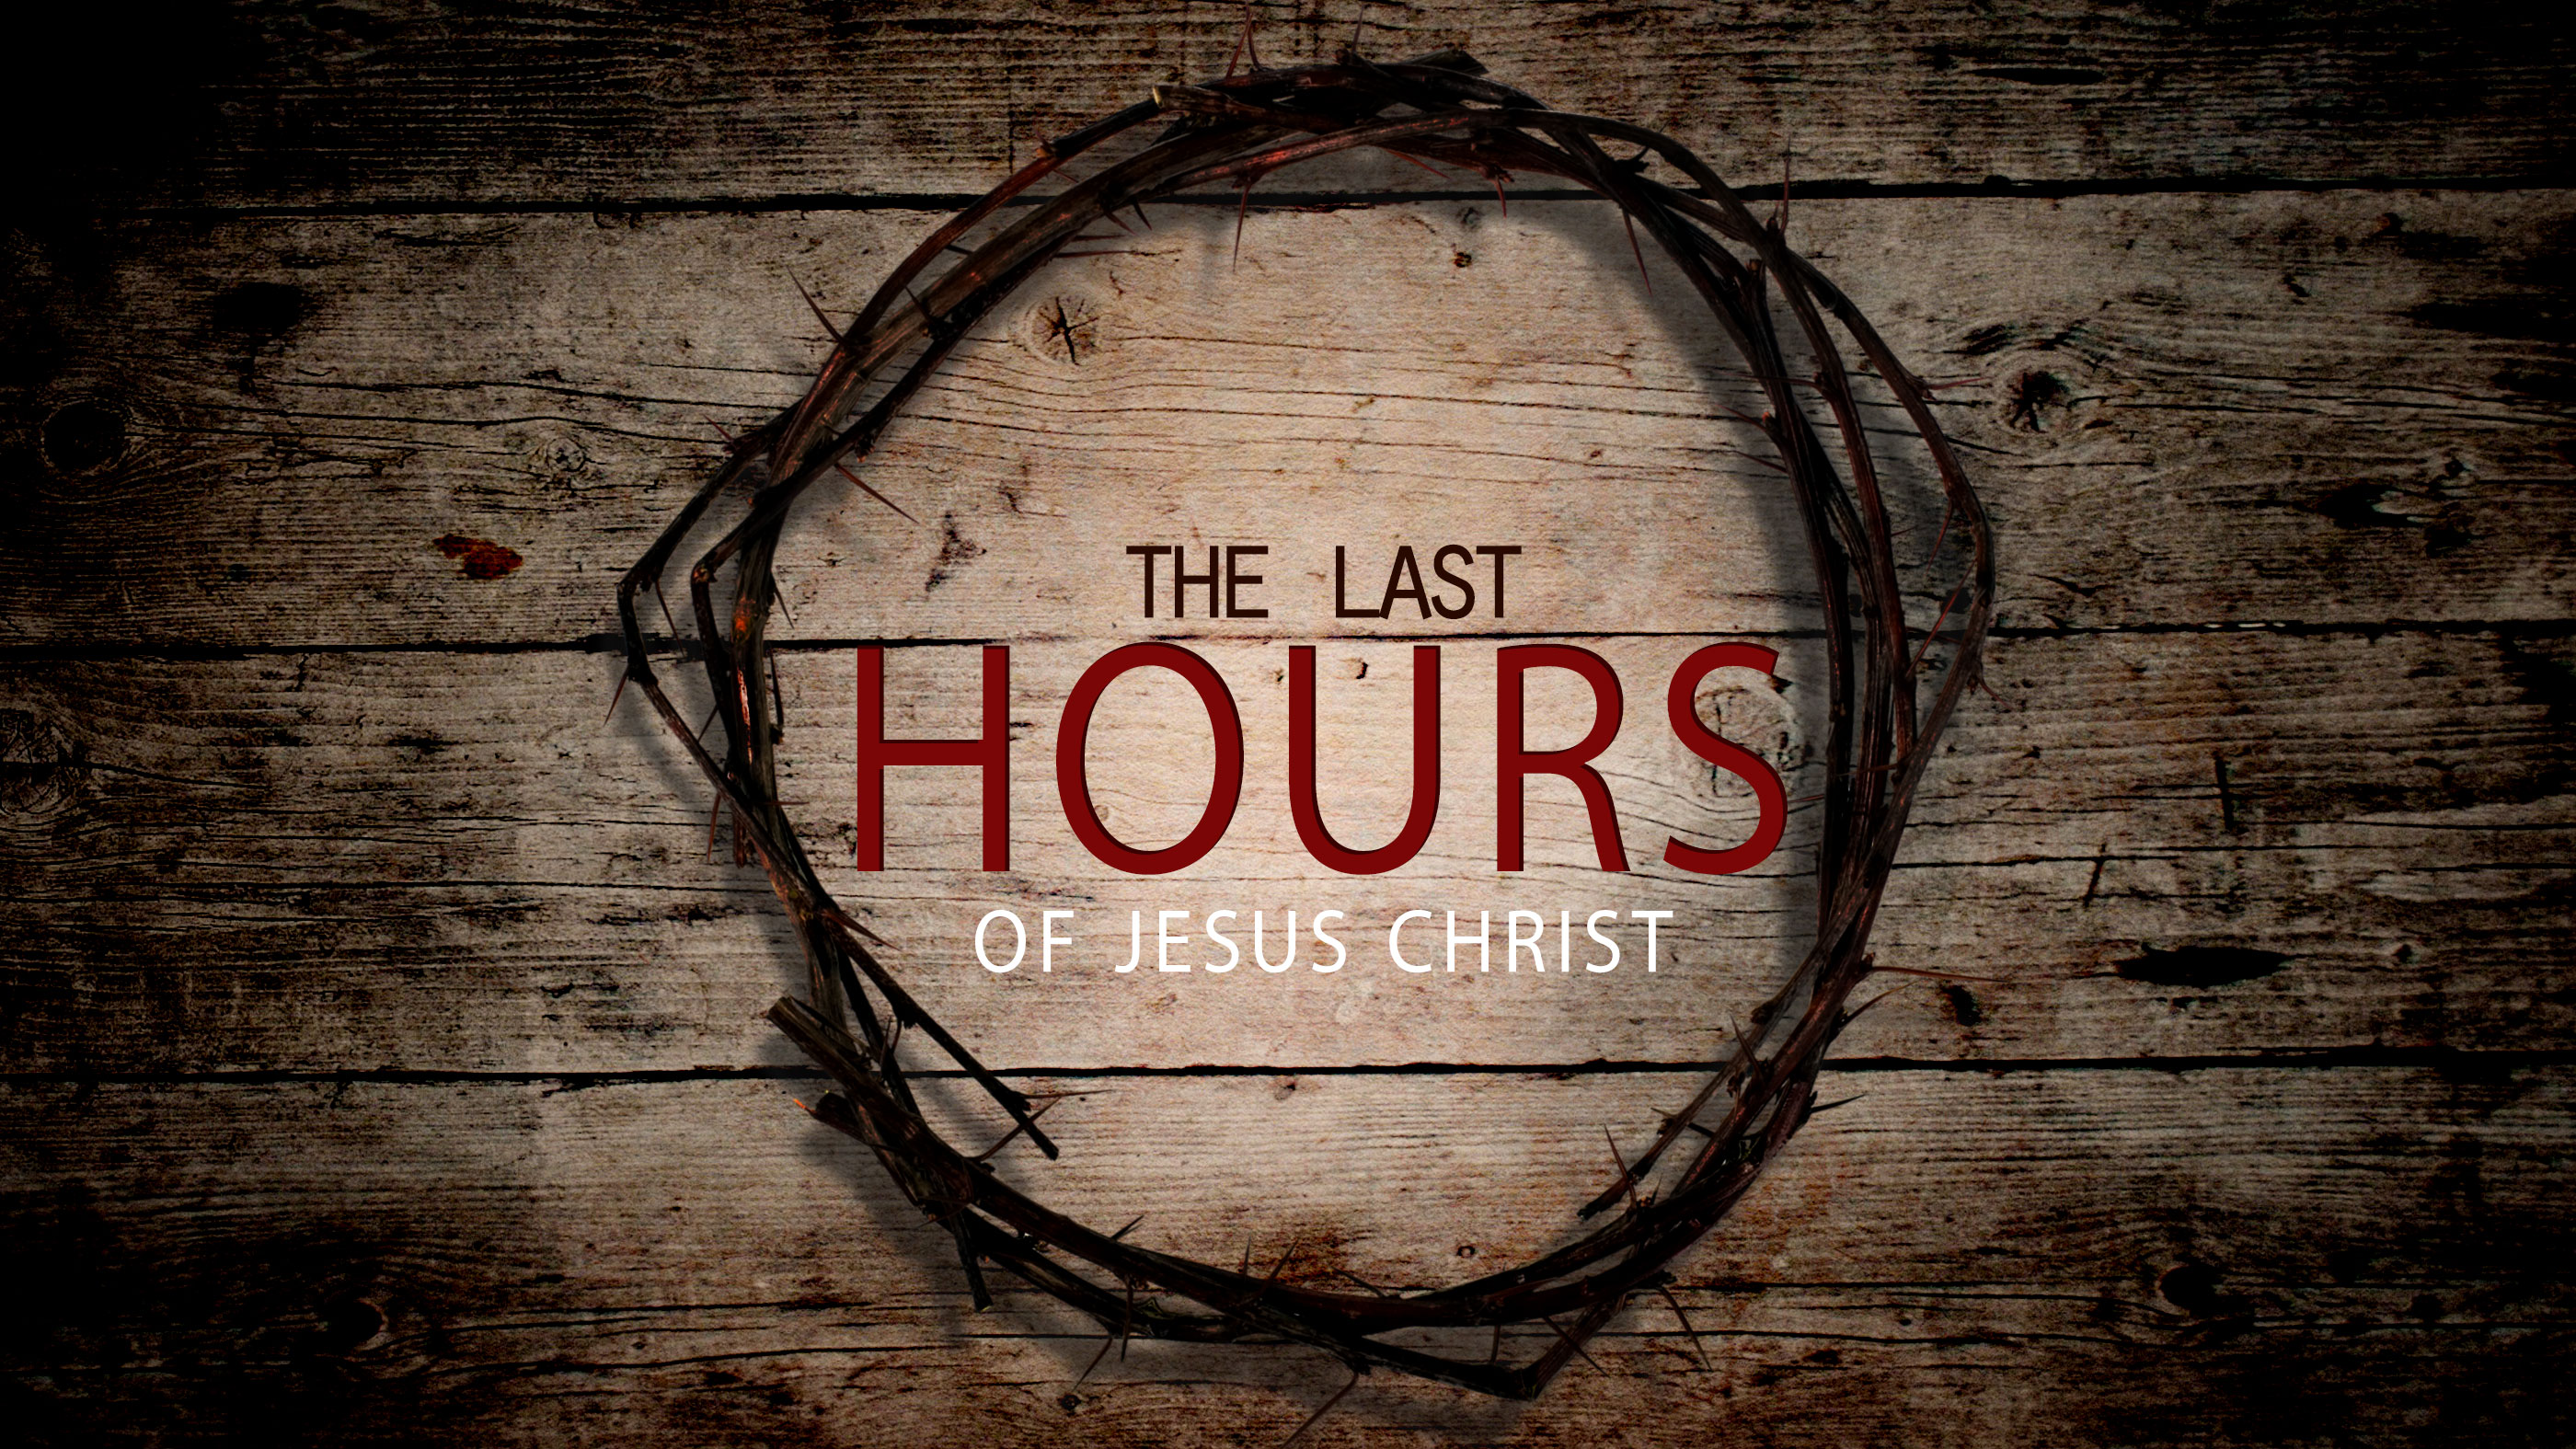 The Last Hours of Jesus Christ